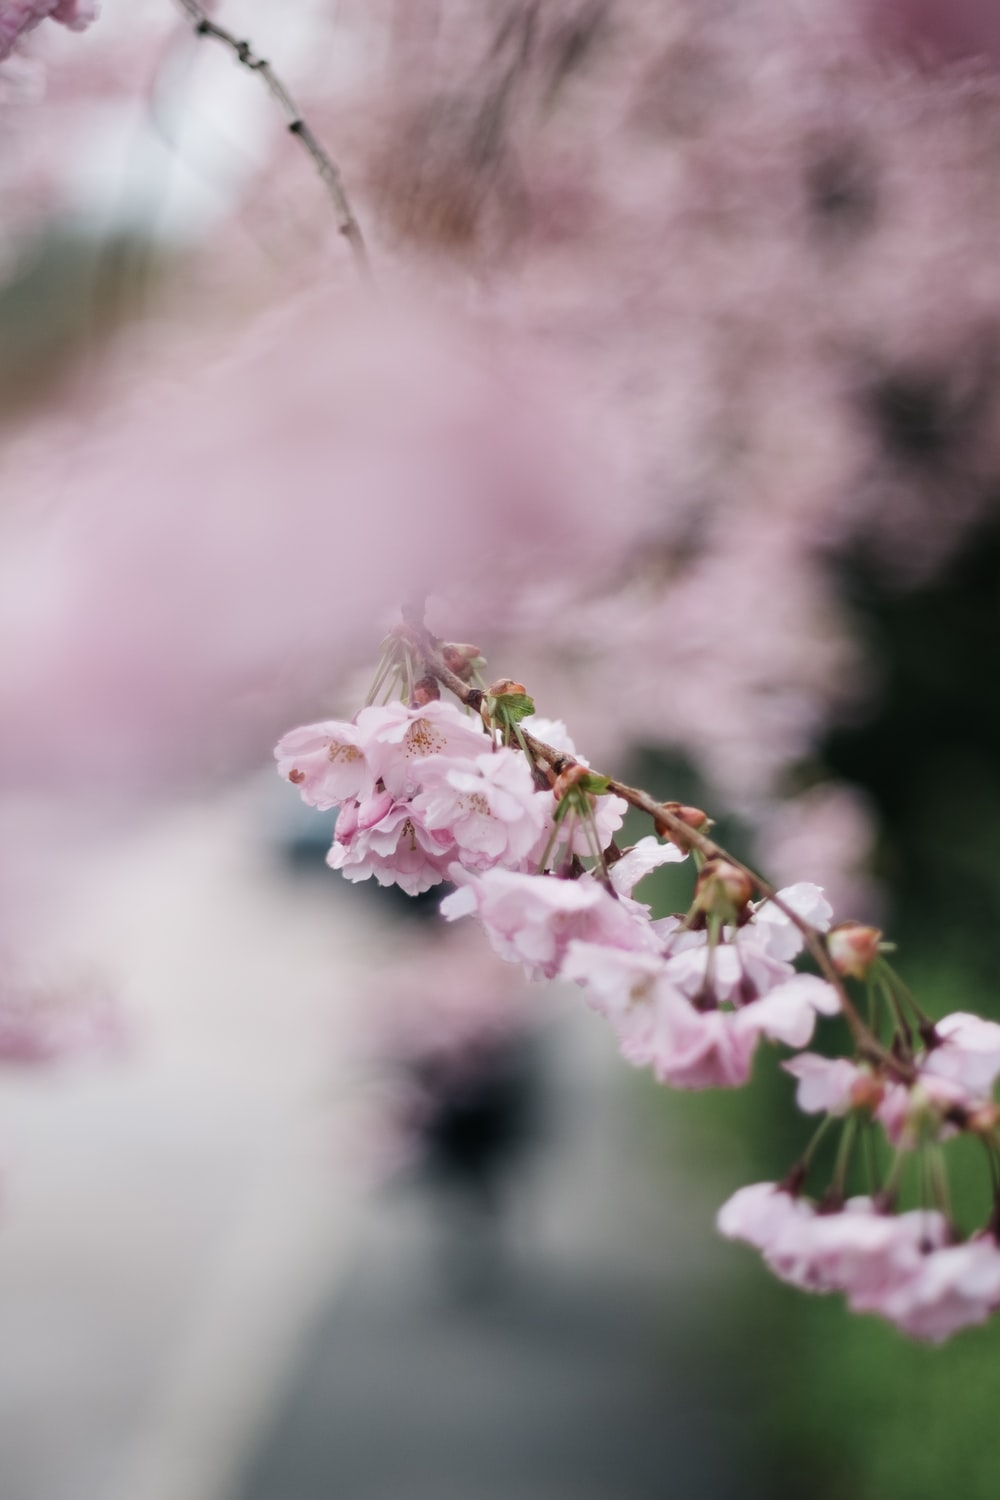 Portrait Cherry Blossom Woman And Flower Hd Photo By Victoria